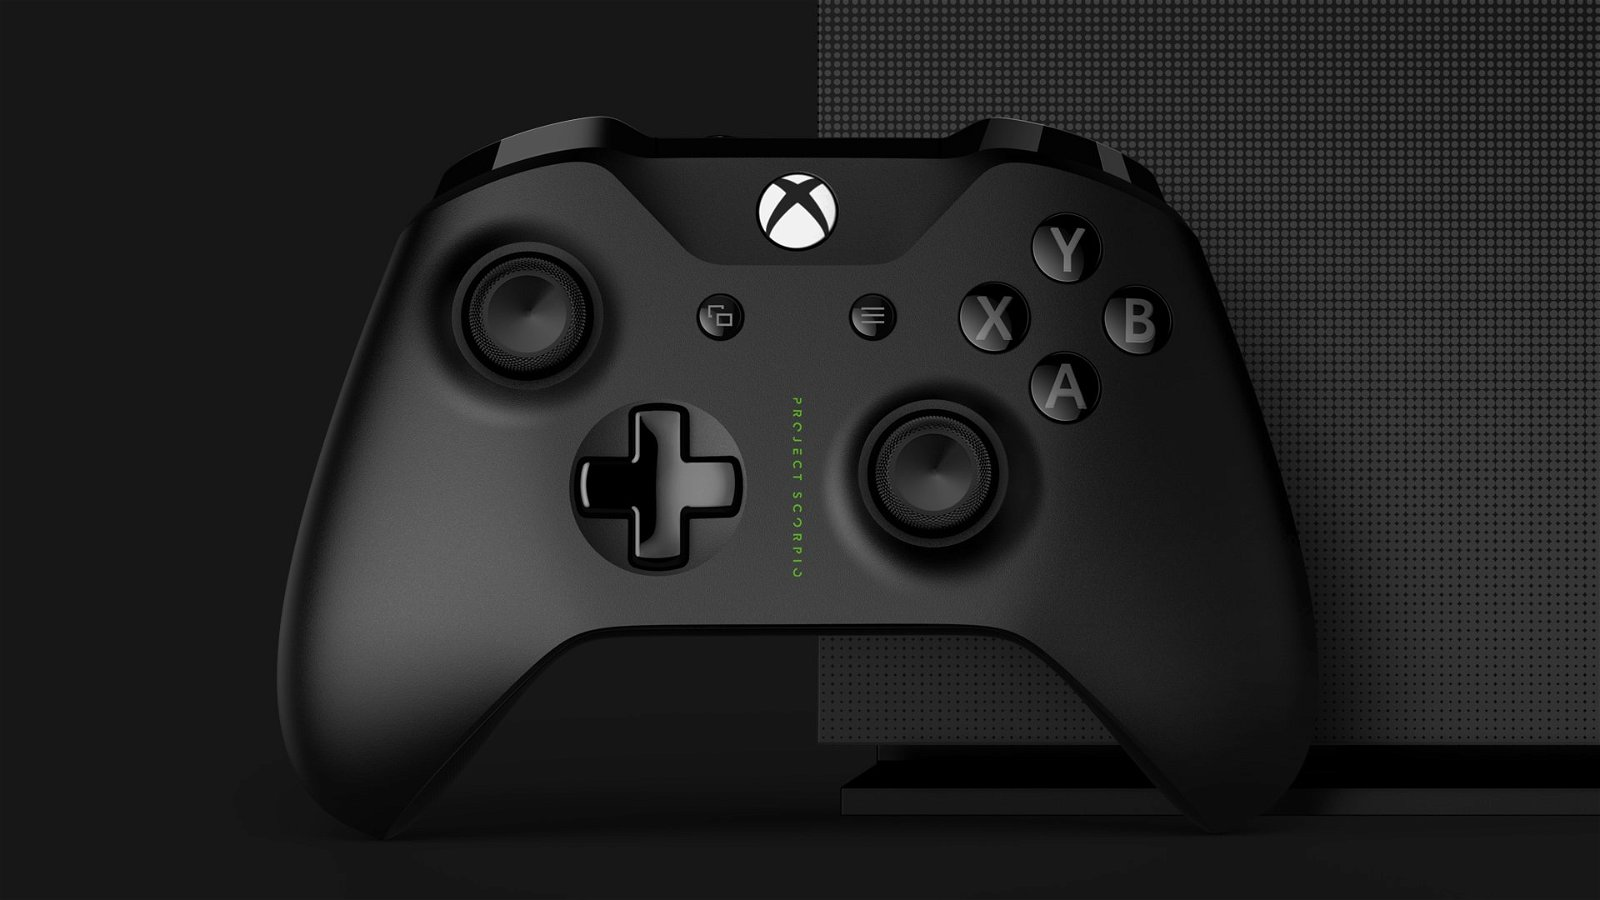 The Future of Xbox One - An Interview with Dave McCarthy 5